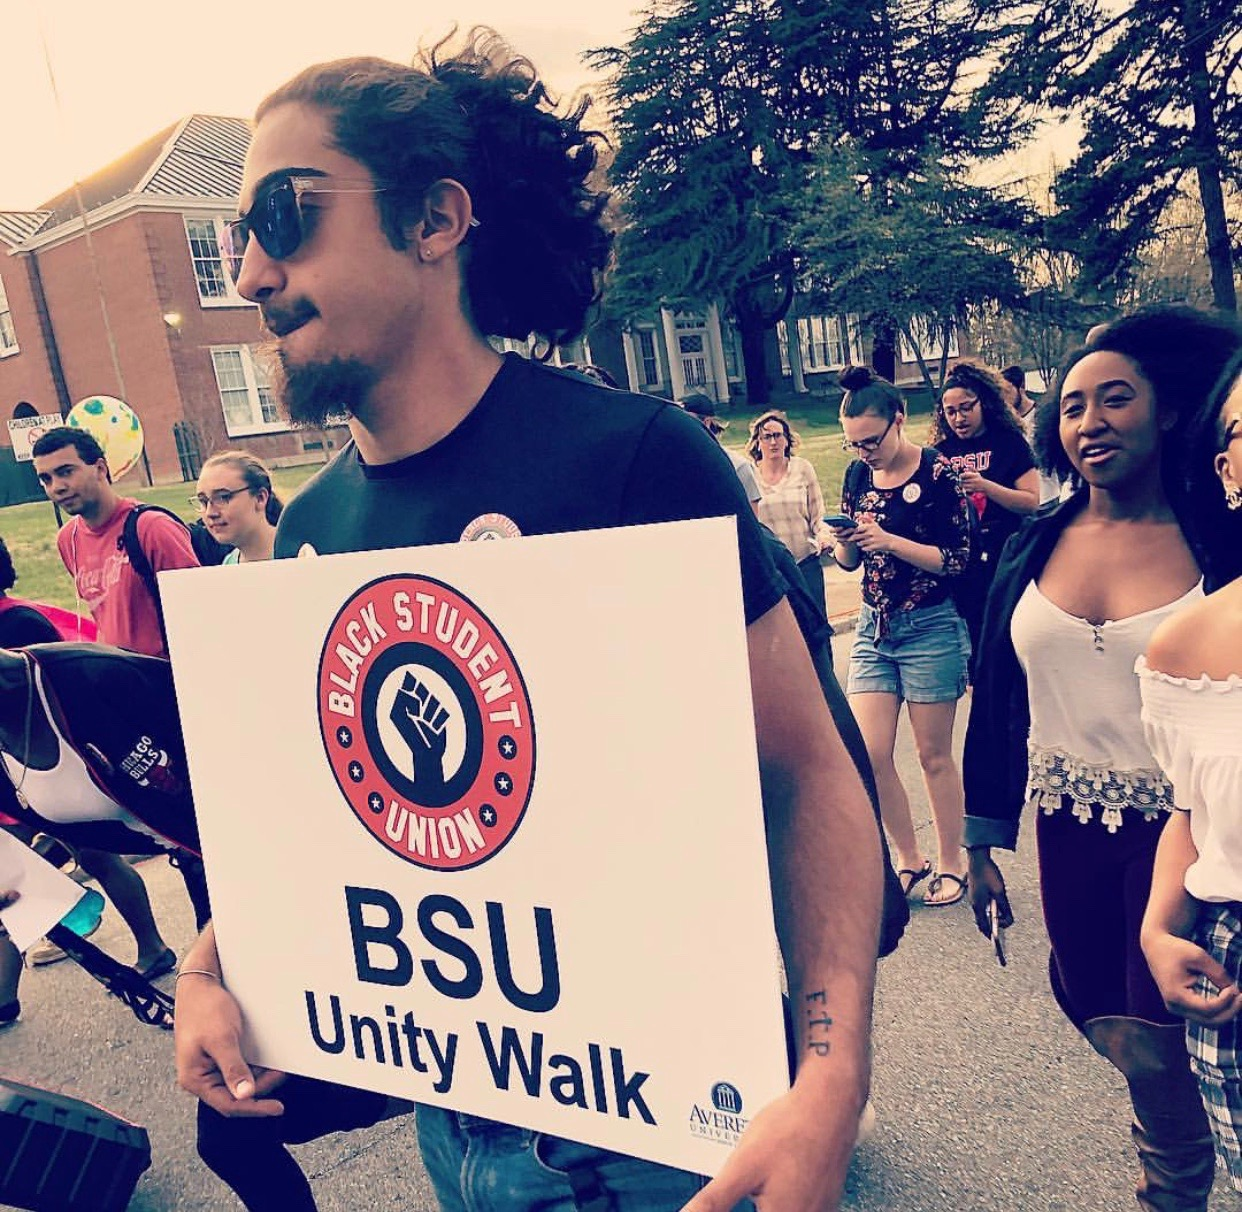 BSU members walking for the Unity event